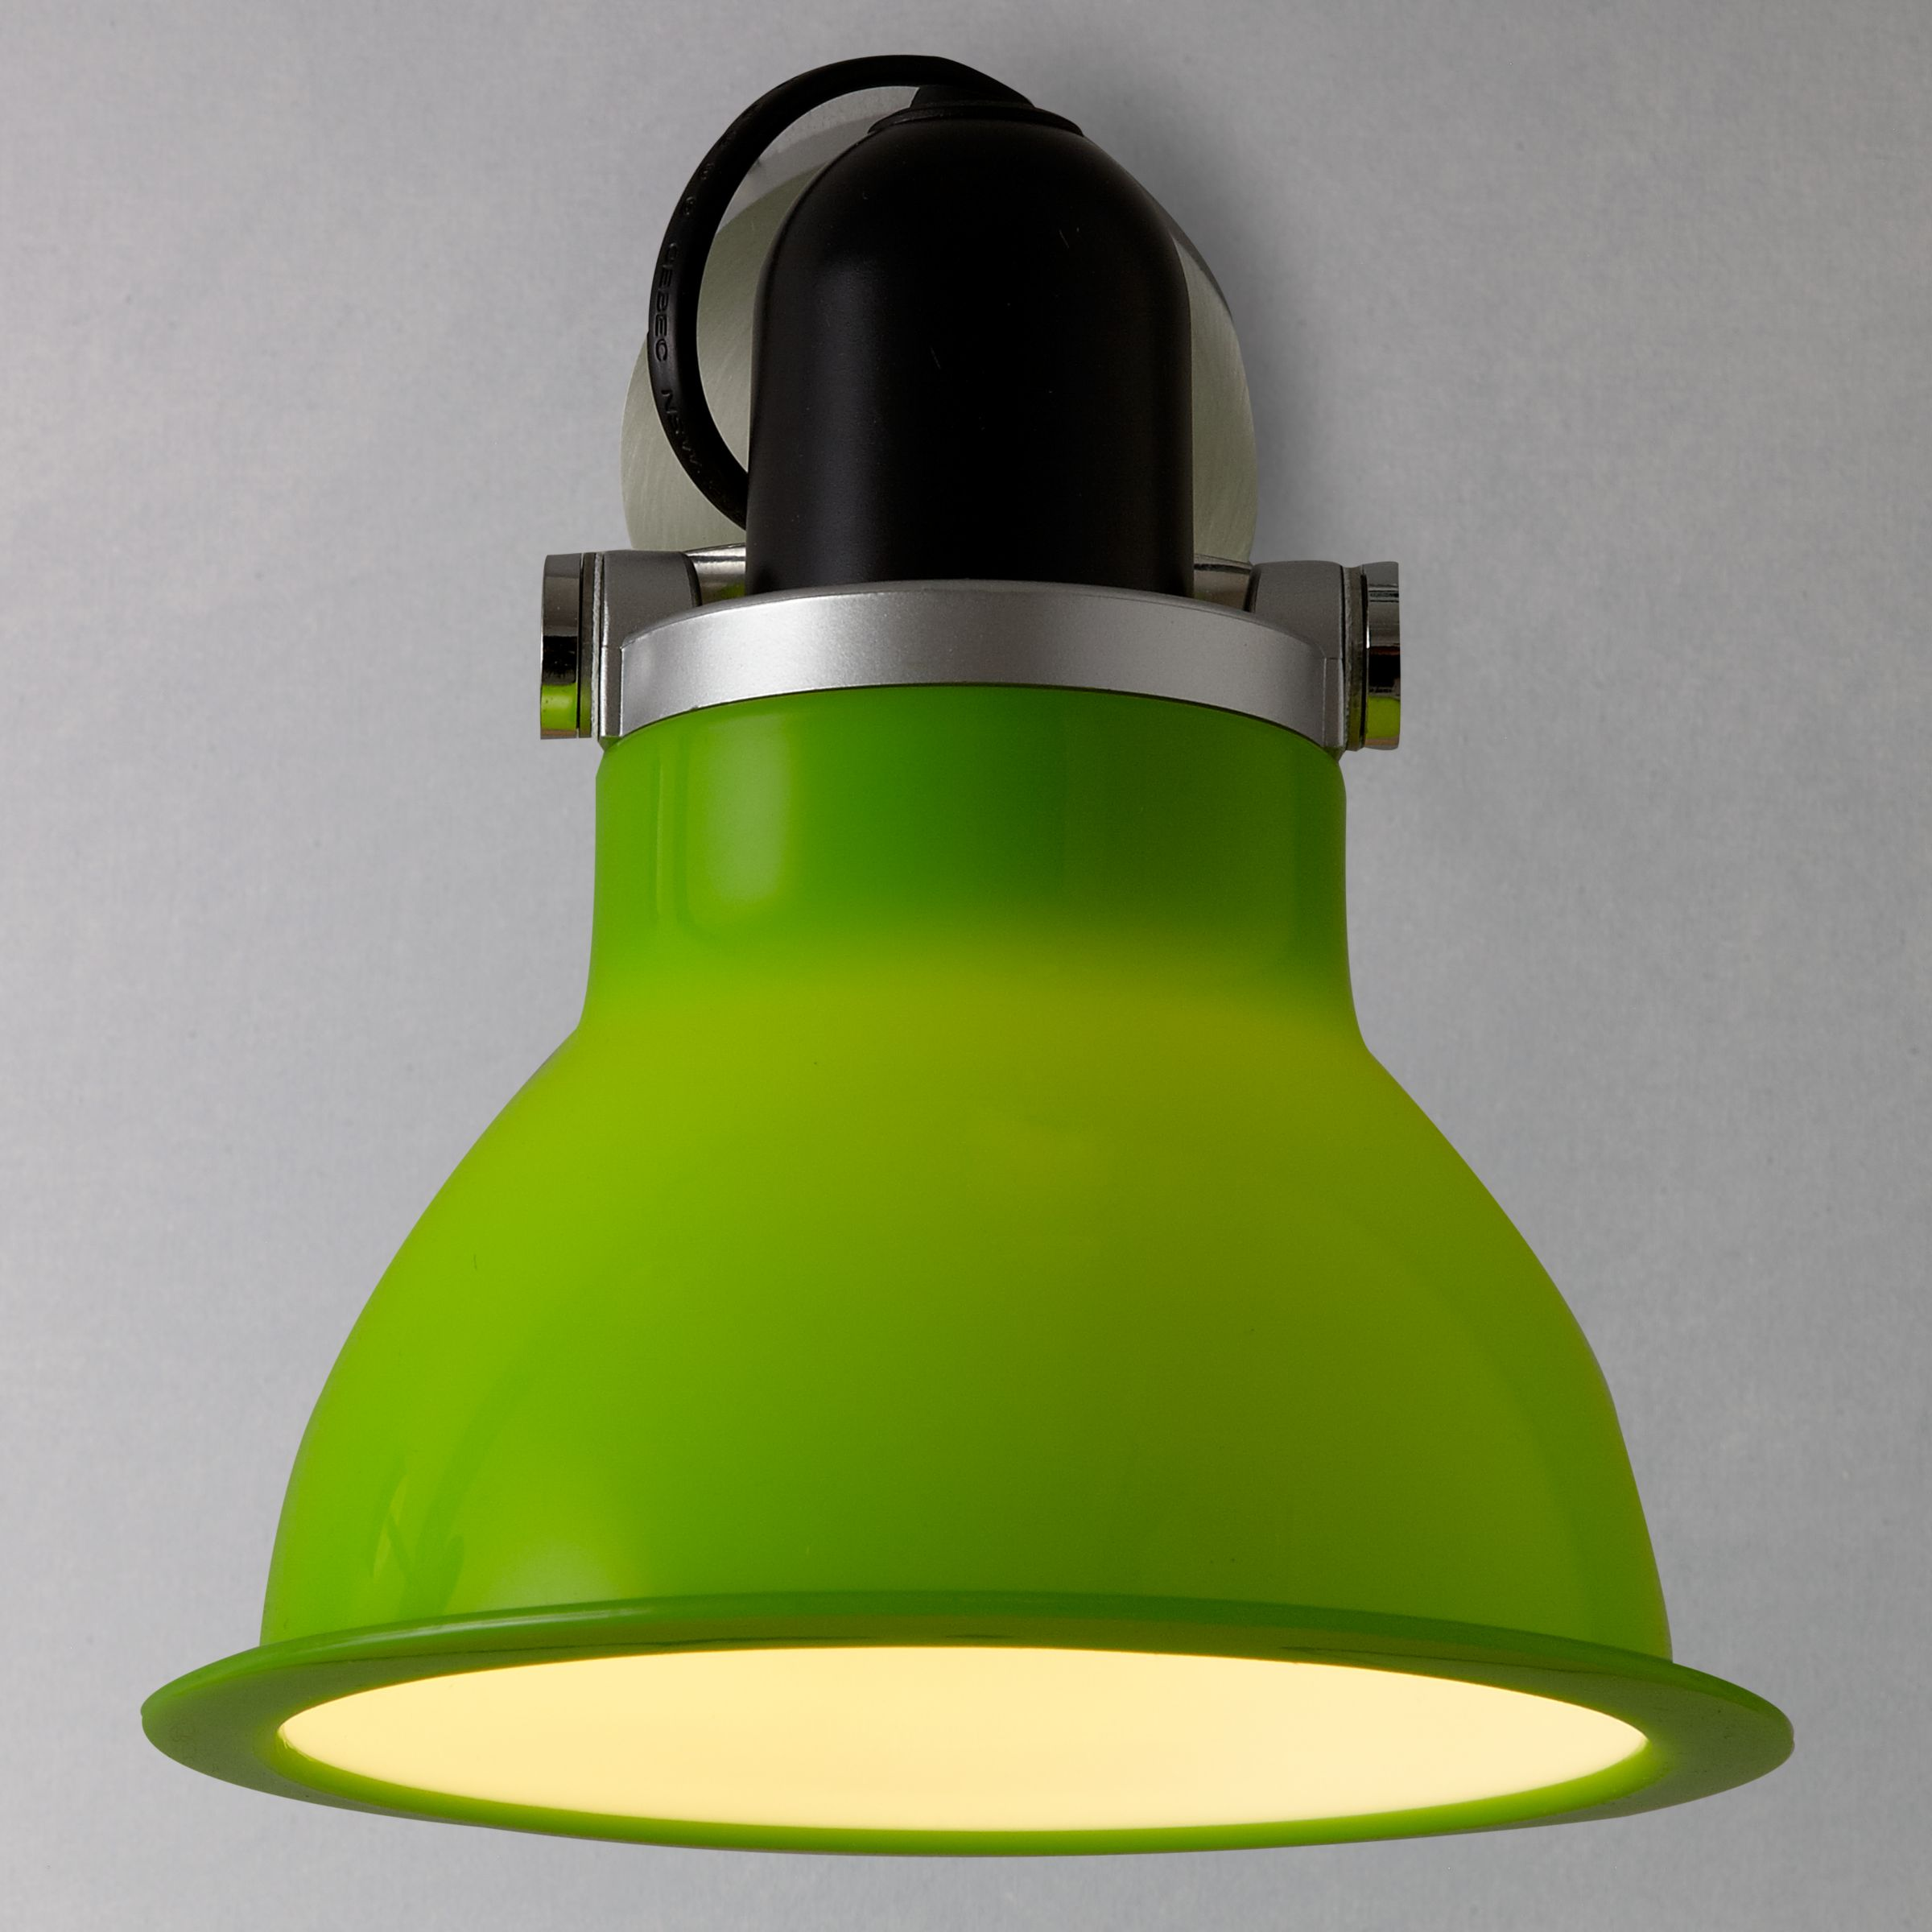 Anglepoise Type 1228 Wall Light, Lime Green - review, compare prices, buy online